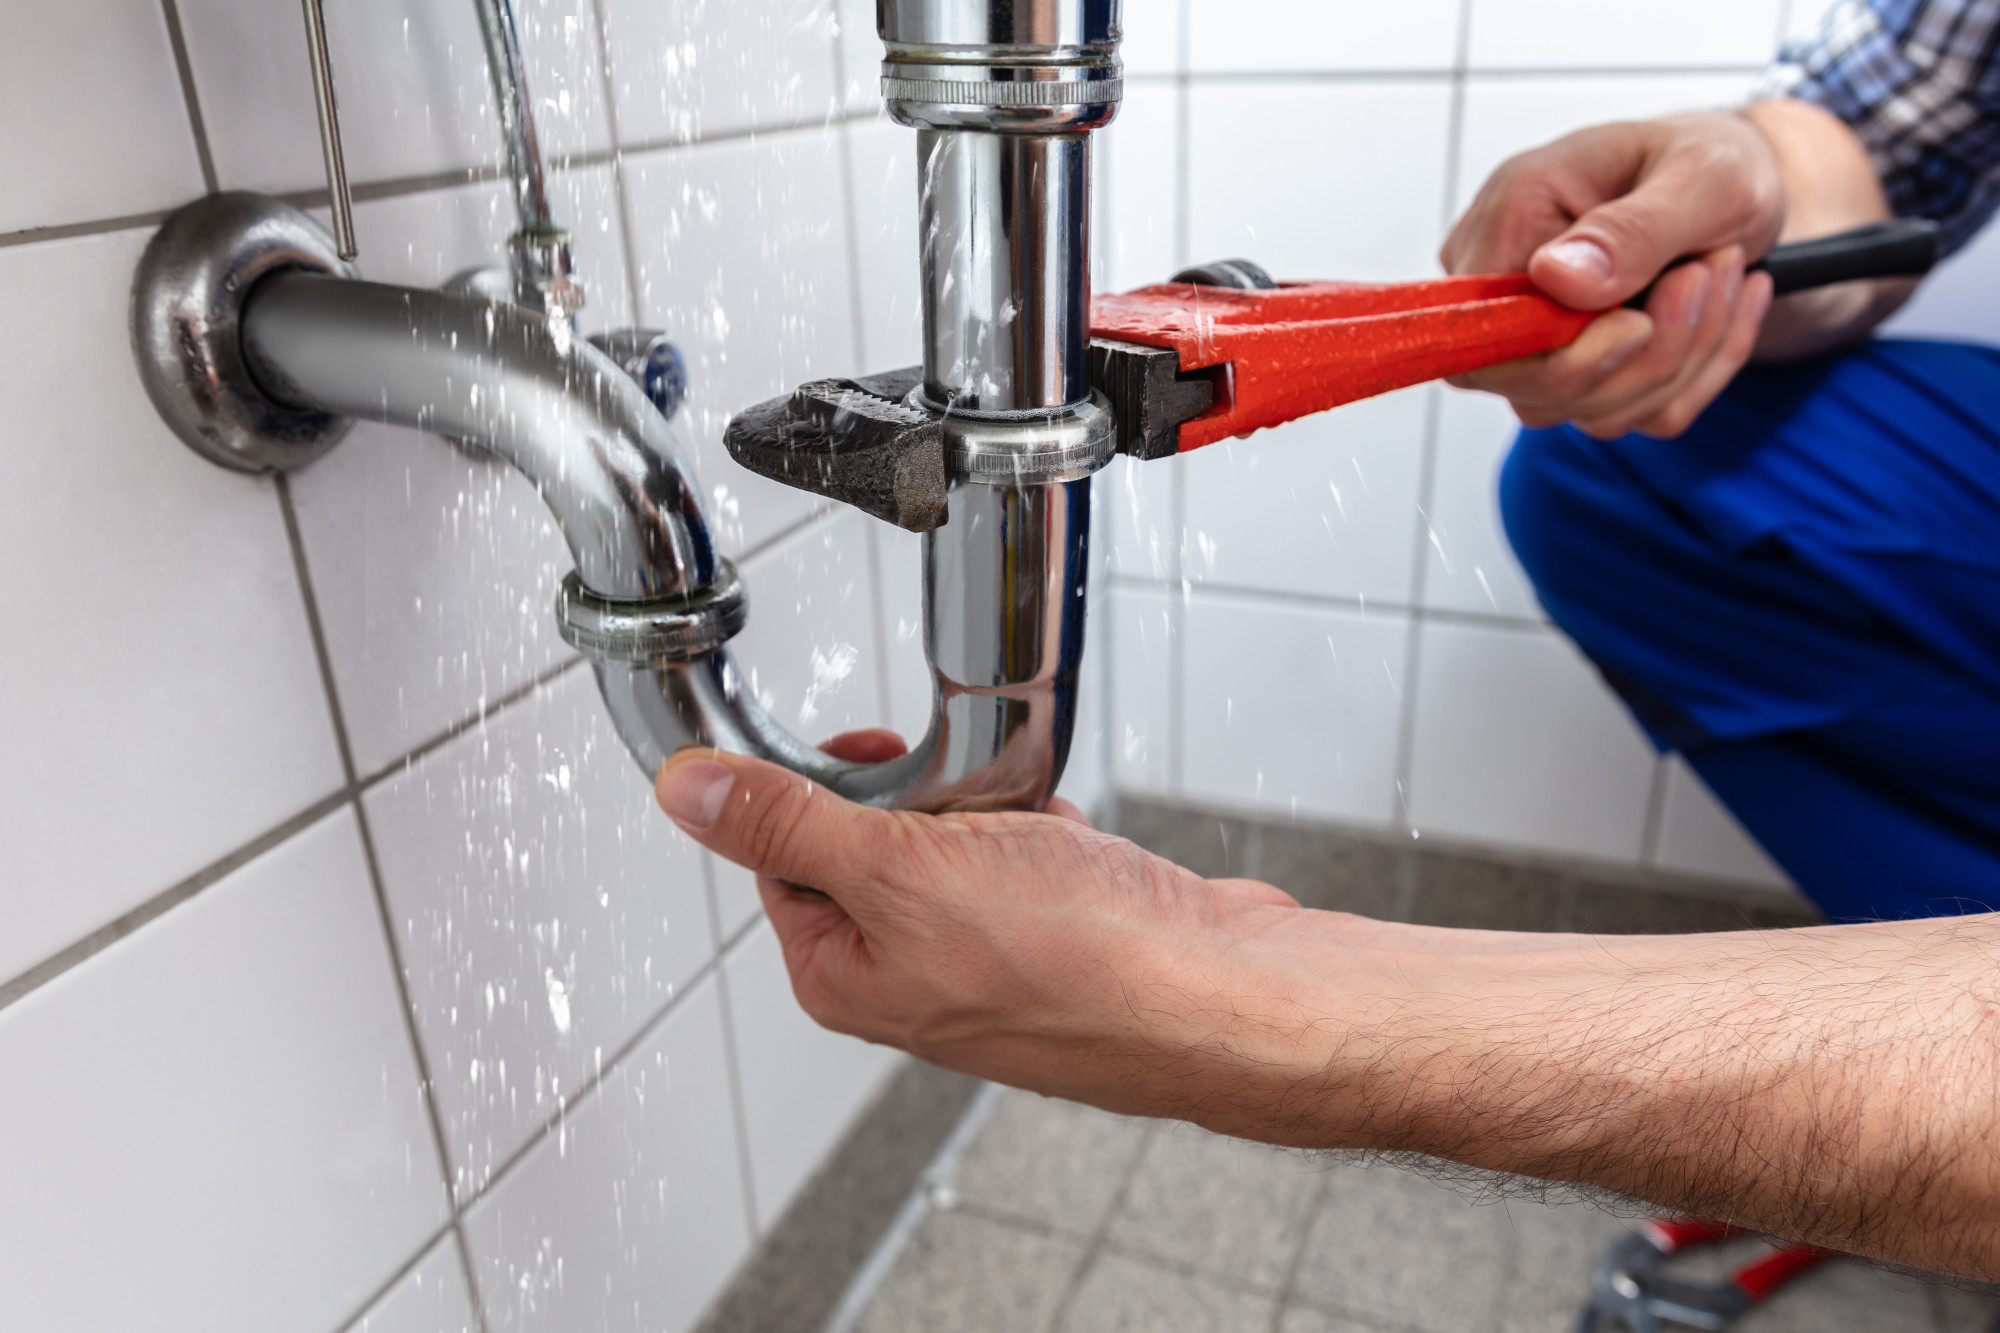 How Much Does a Plumber Cost? A Helpful Price Guide